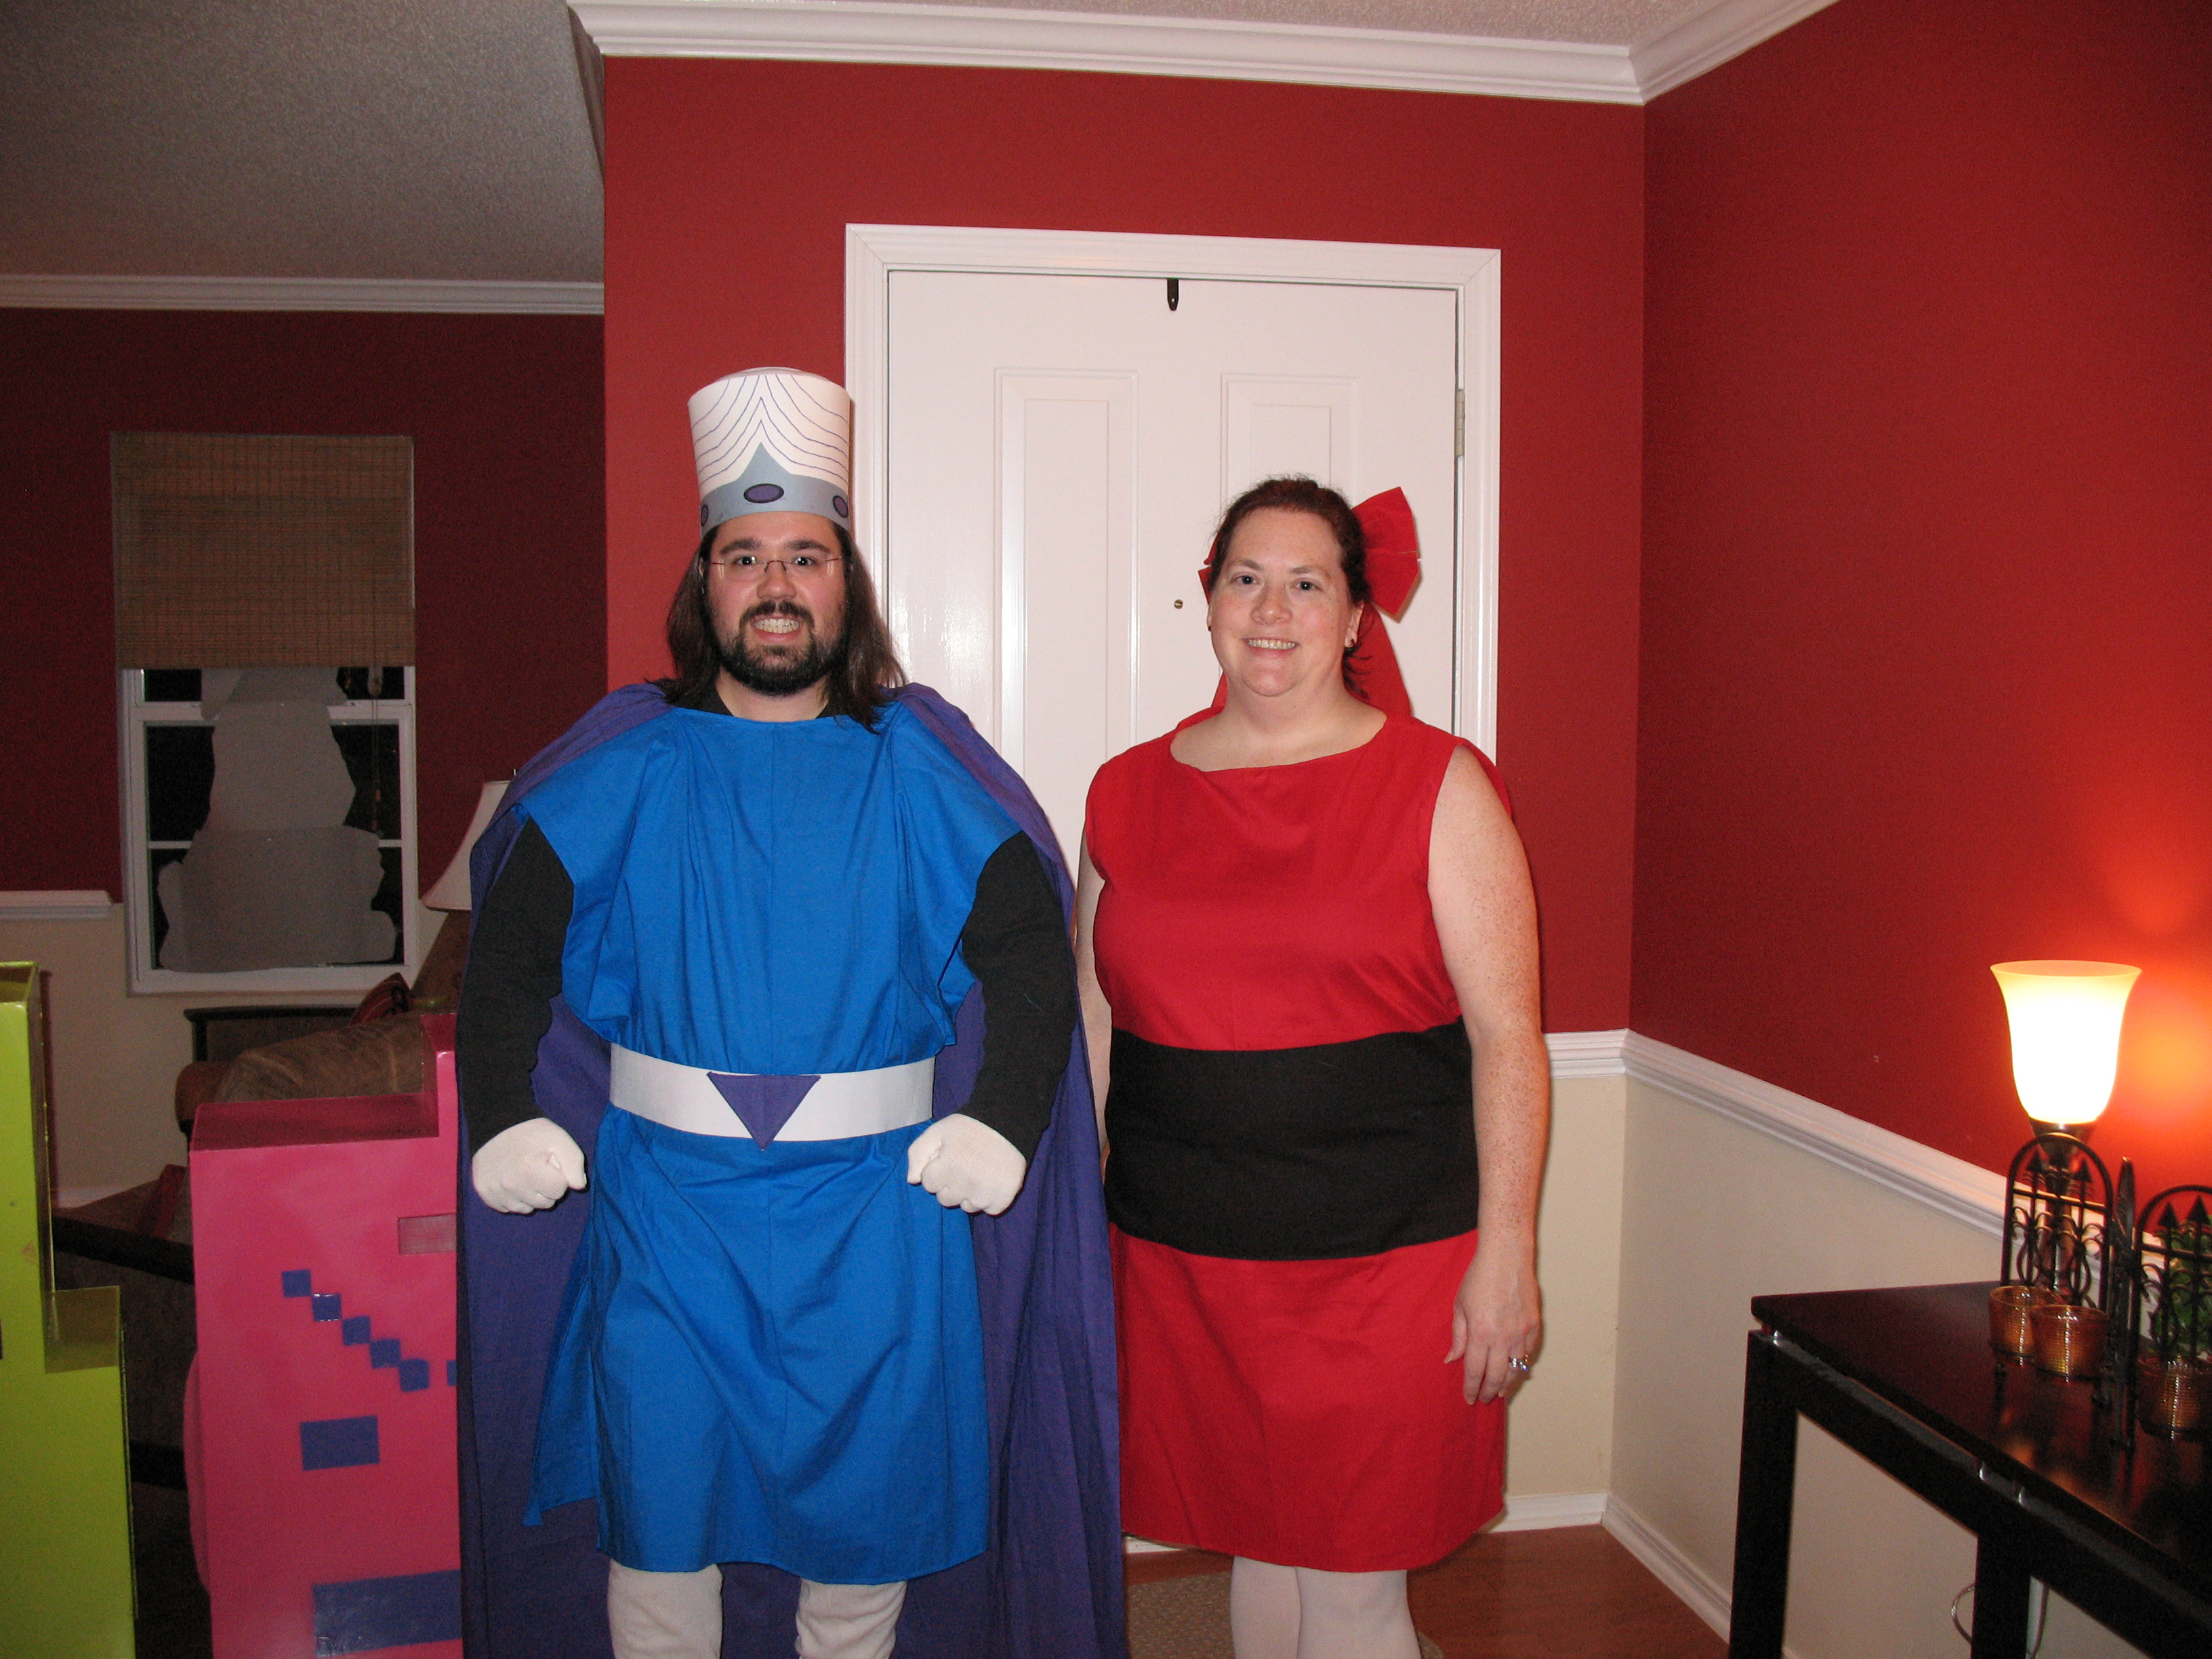 Mojo Jojo and Blossom from the Powerpuff Girls